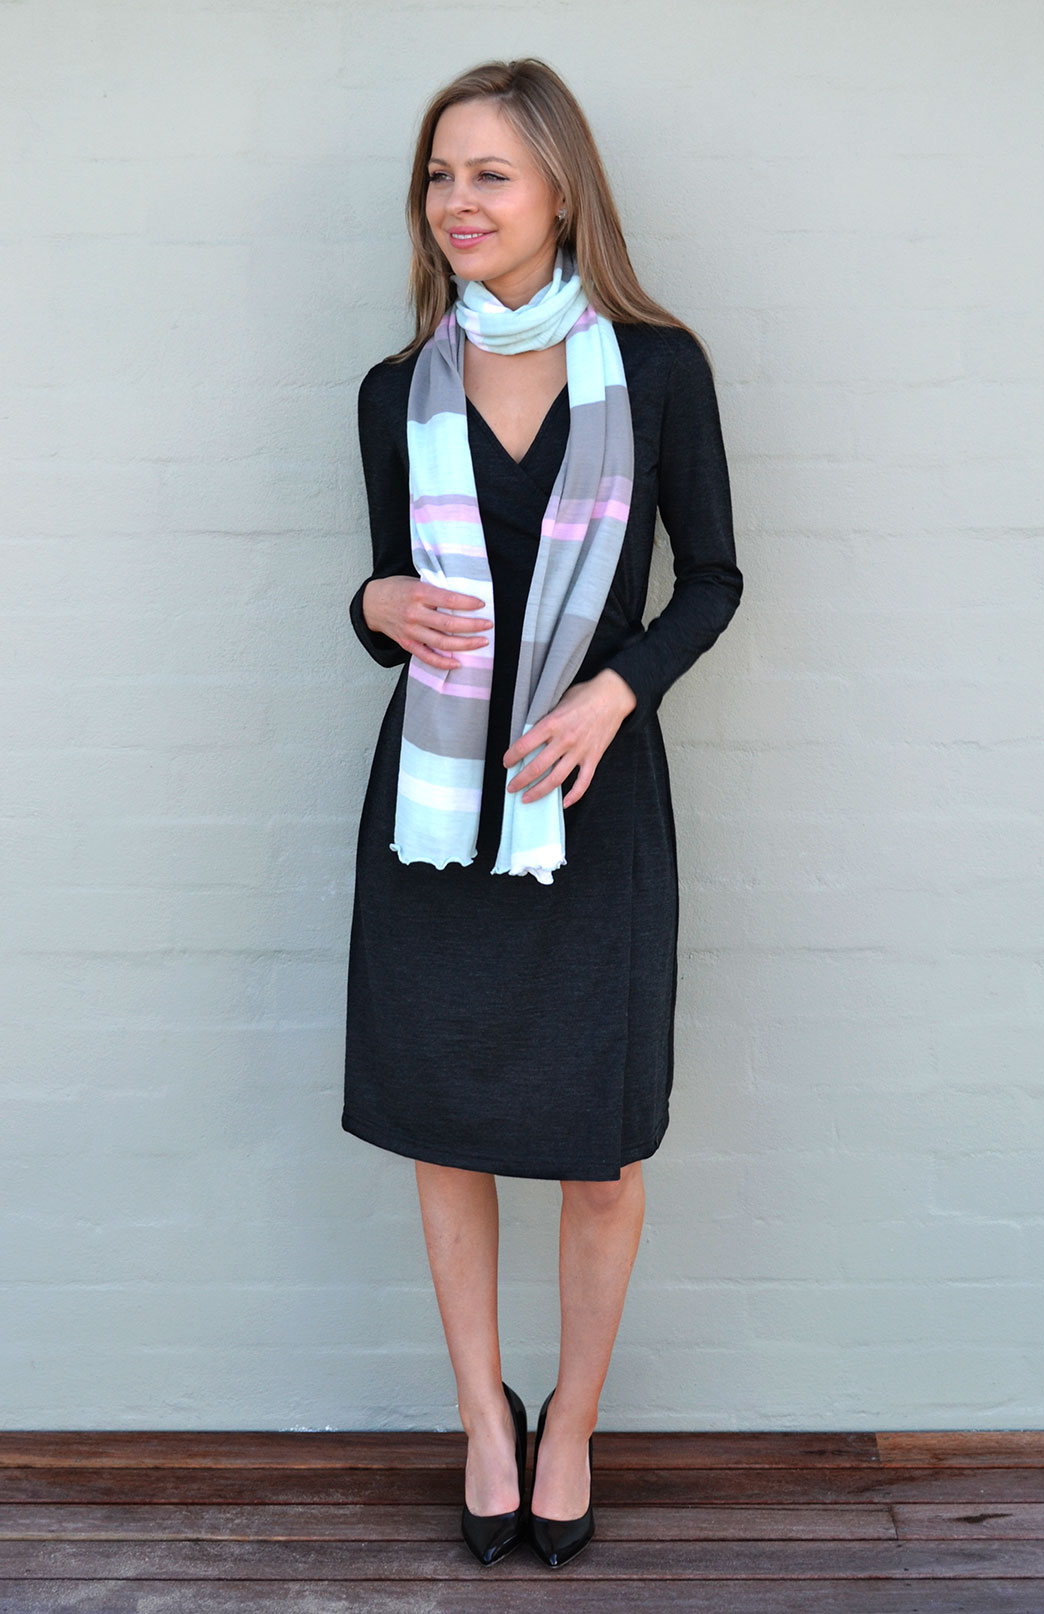 Scarves - Multi Striped - Women's Superfine Merino Wool Classic Wide Scarf - Smitten Merino Tasmania Australia